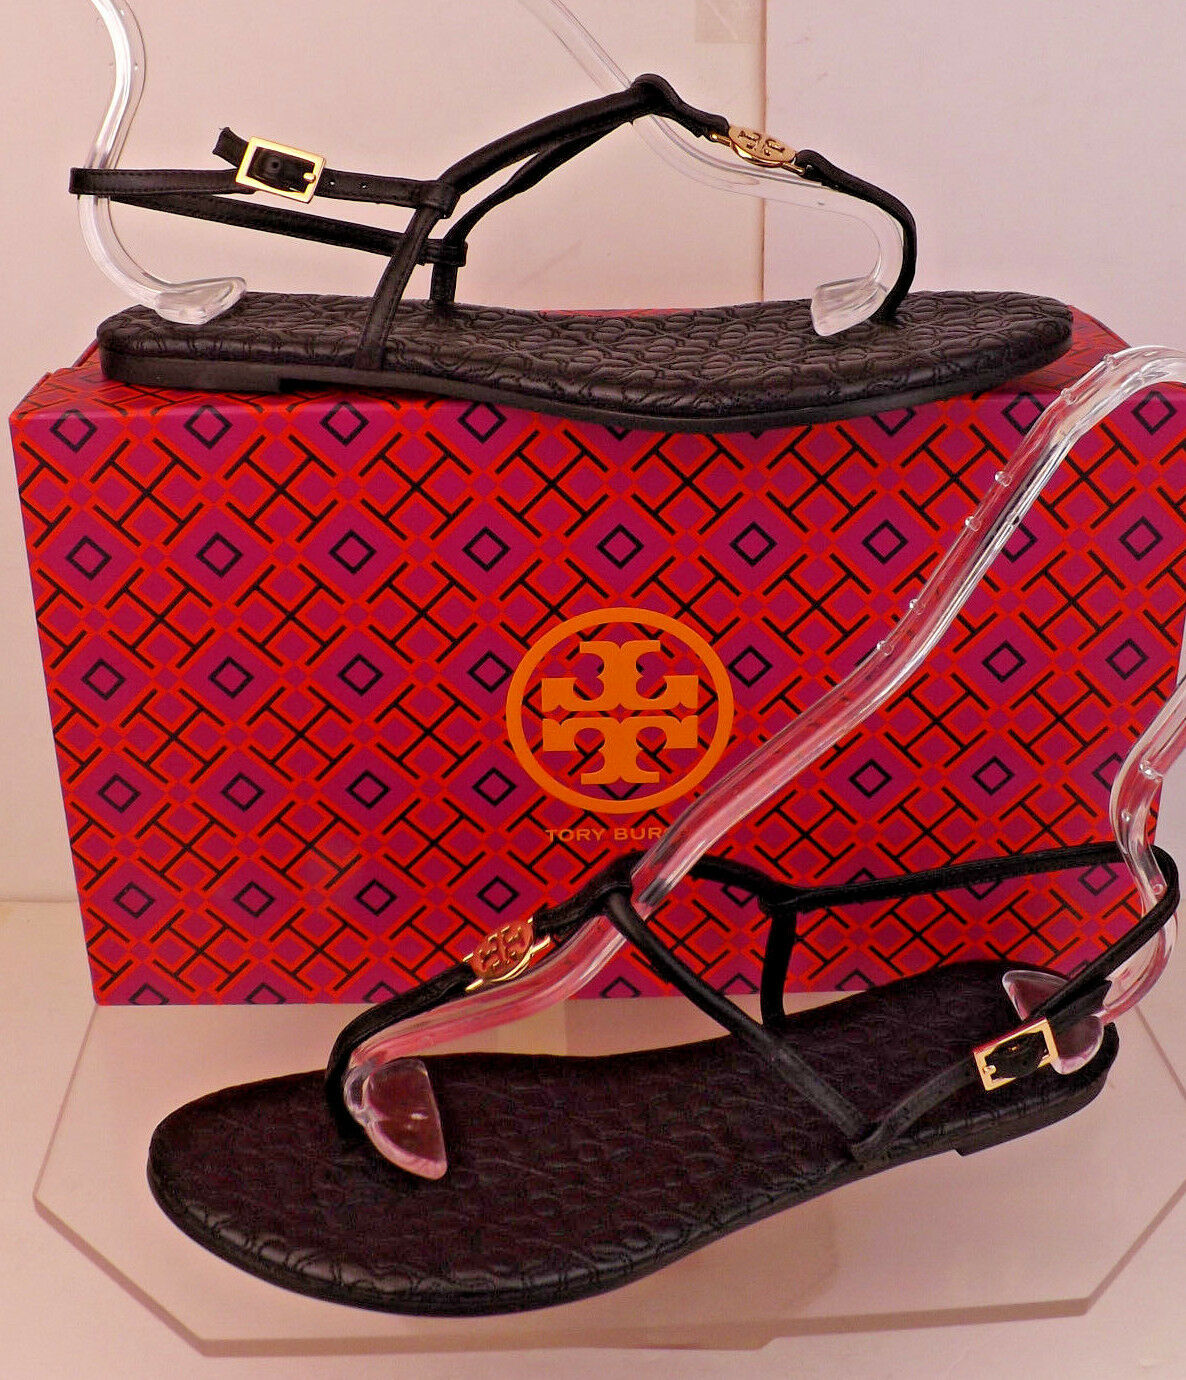 NIB TORY BURCH BLACK BRYANT QUILTED LEATHER GOLD REVA THONG FLATS SANDALS 10